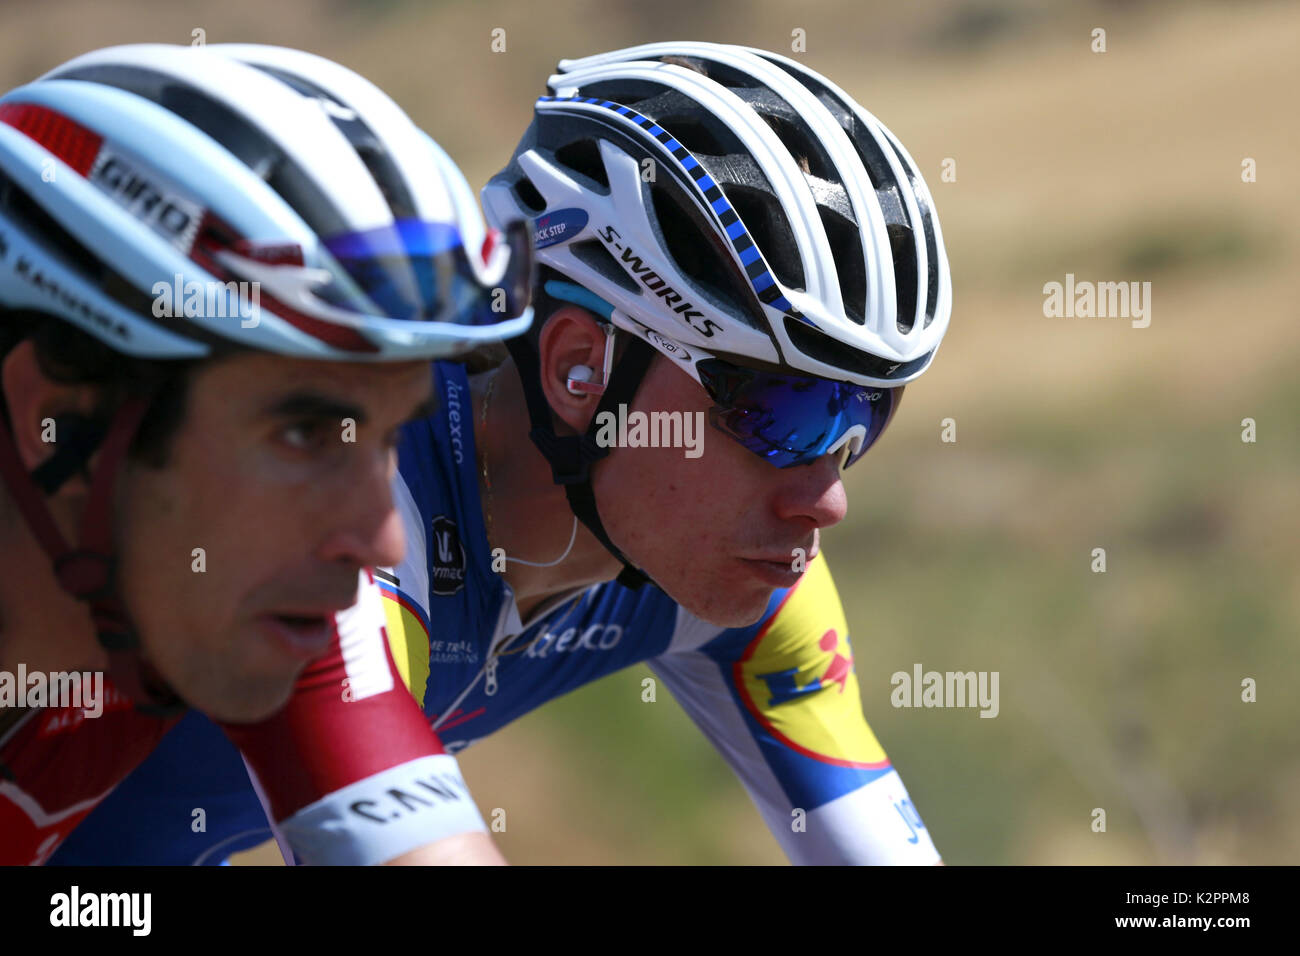 Catalan cyclists Alberto Losada and David de la Cruz (R) in action during the 12th stage of the Vuelta a Espana cycling race over 160.1km between Motril and Antequera Los Dolmenes, Spain, 31 August 2017. EFE/JAVIER LIZON - Stock Image